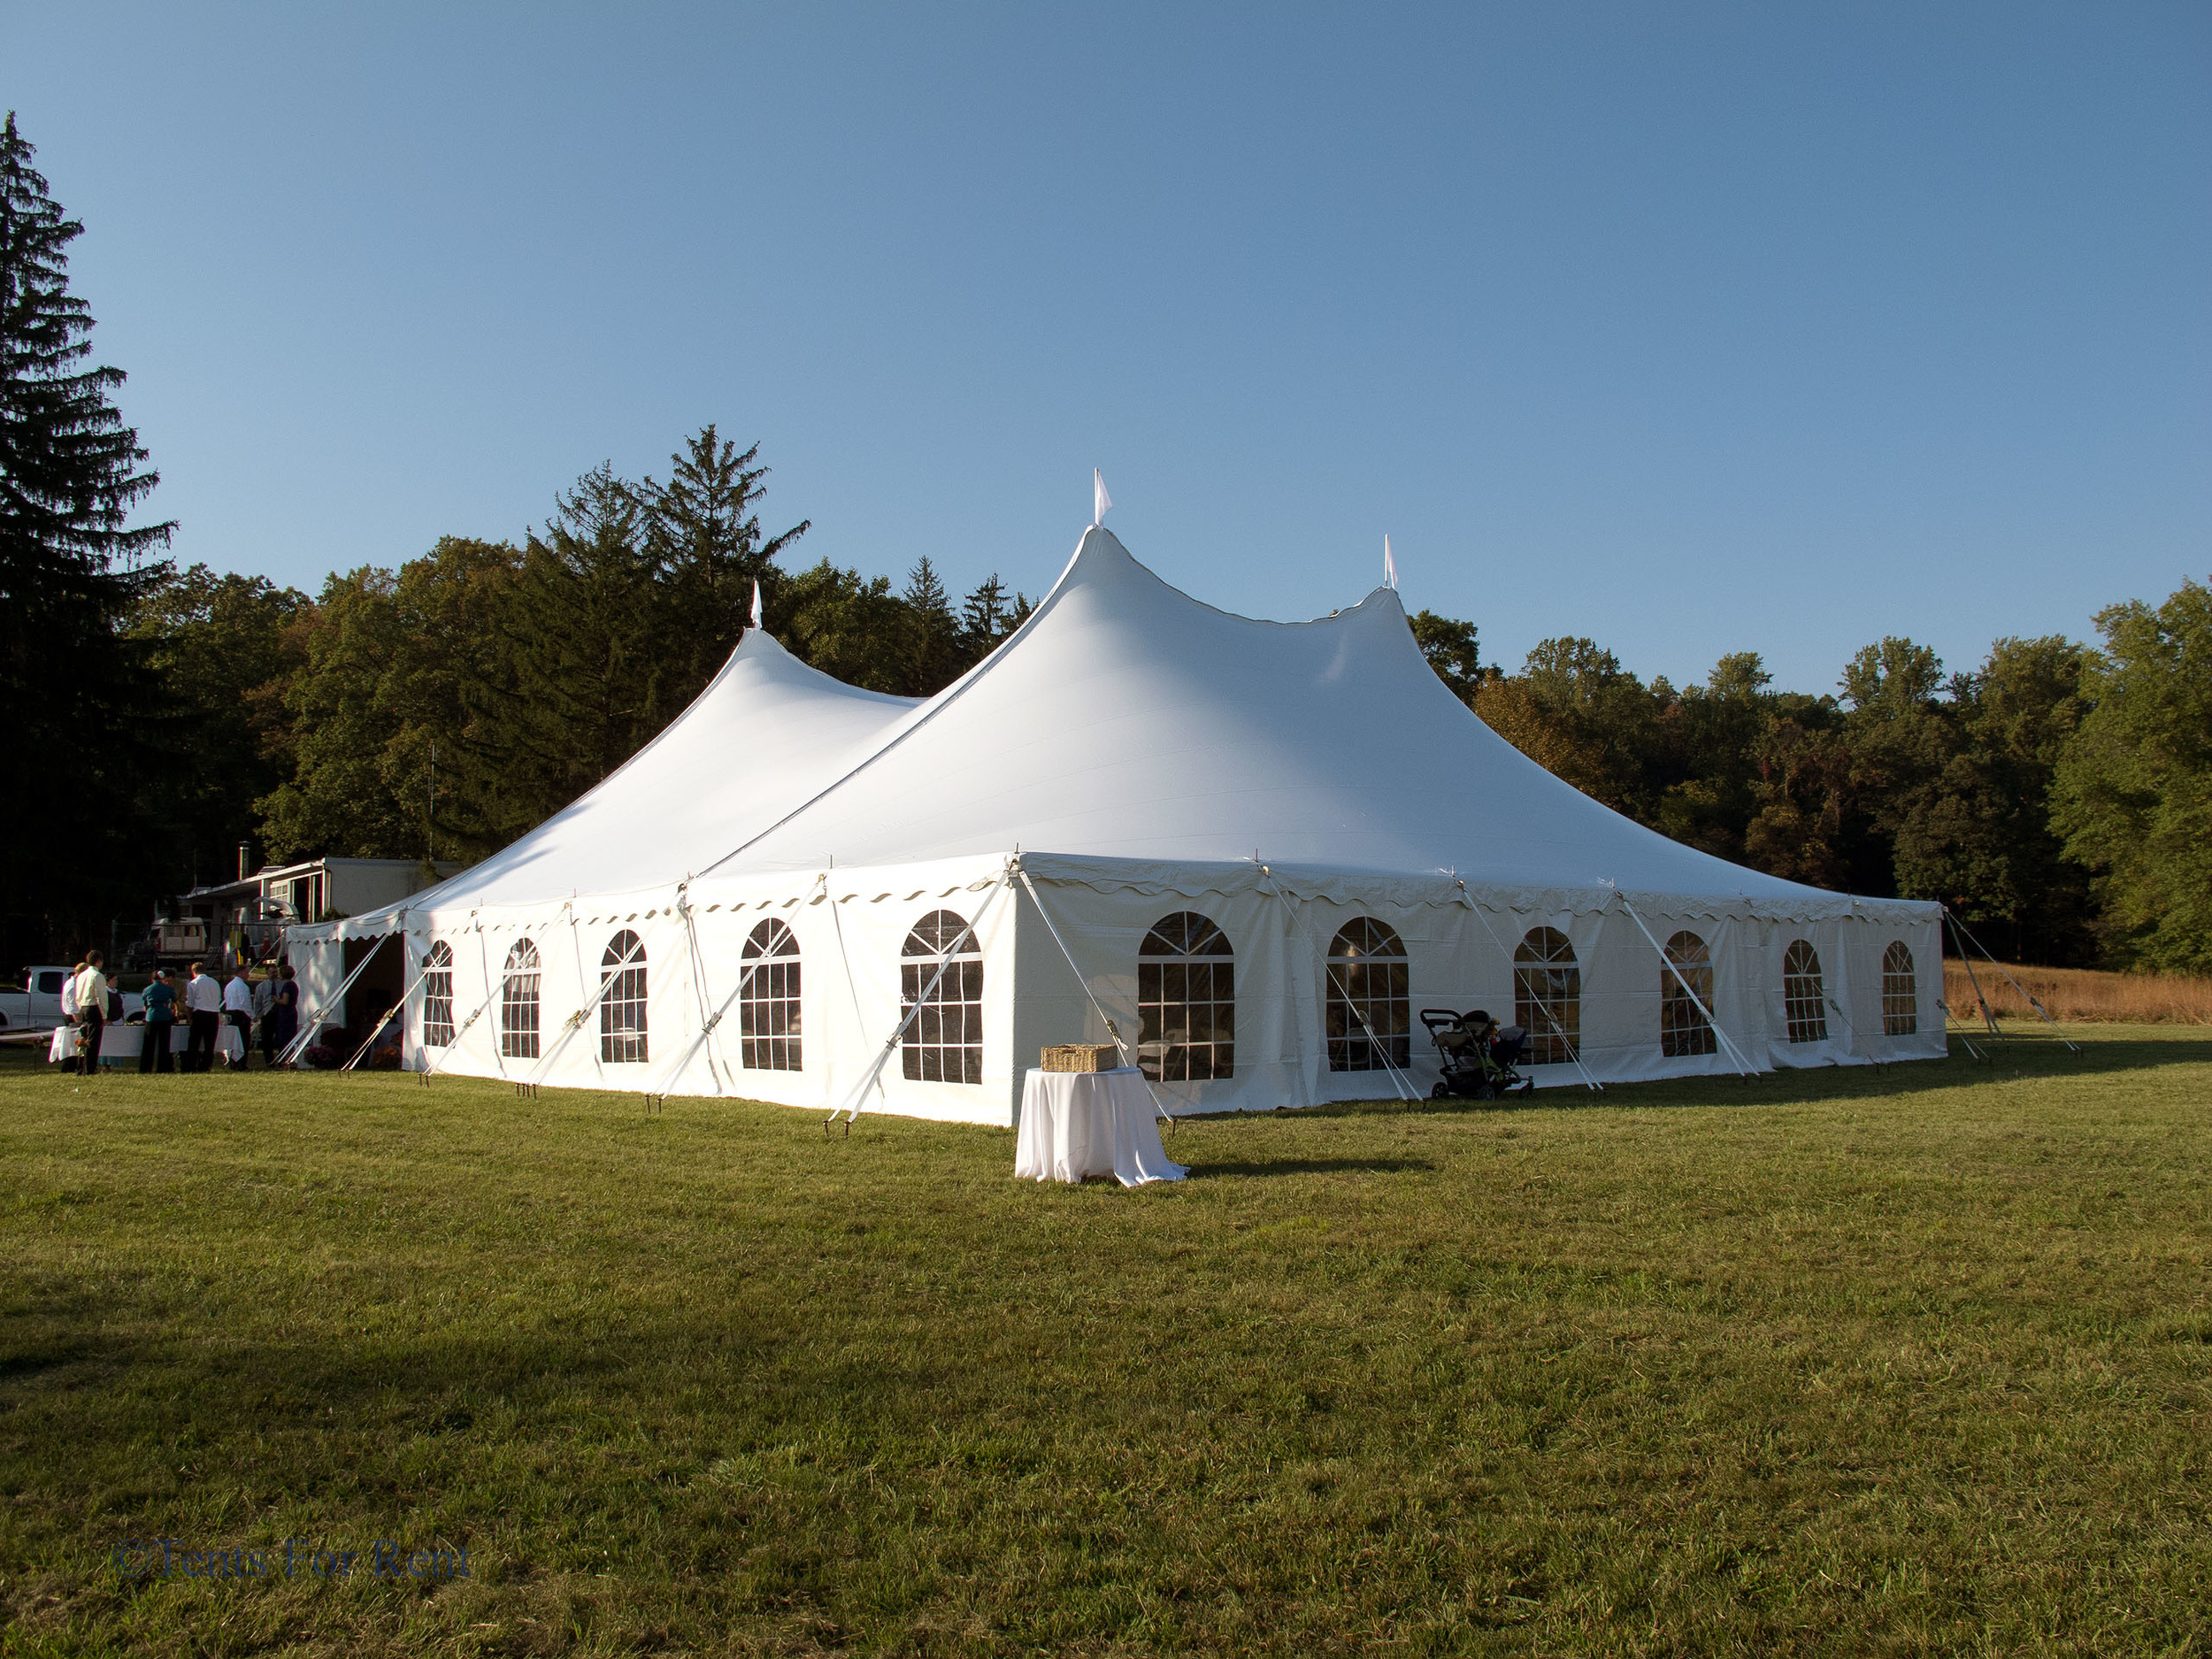 Wedding tents for rent Newark, NJ